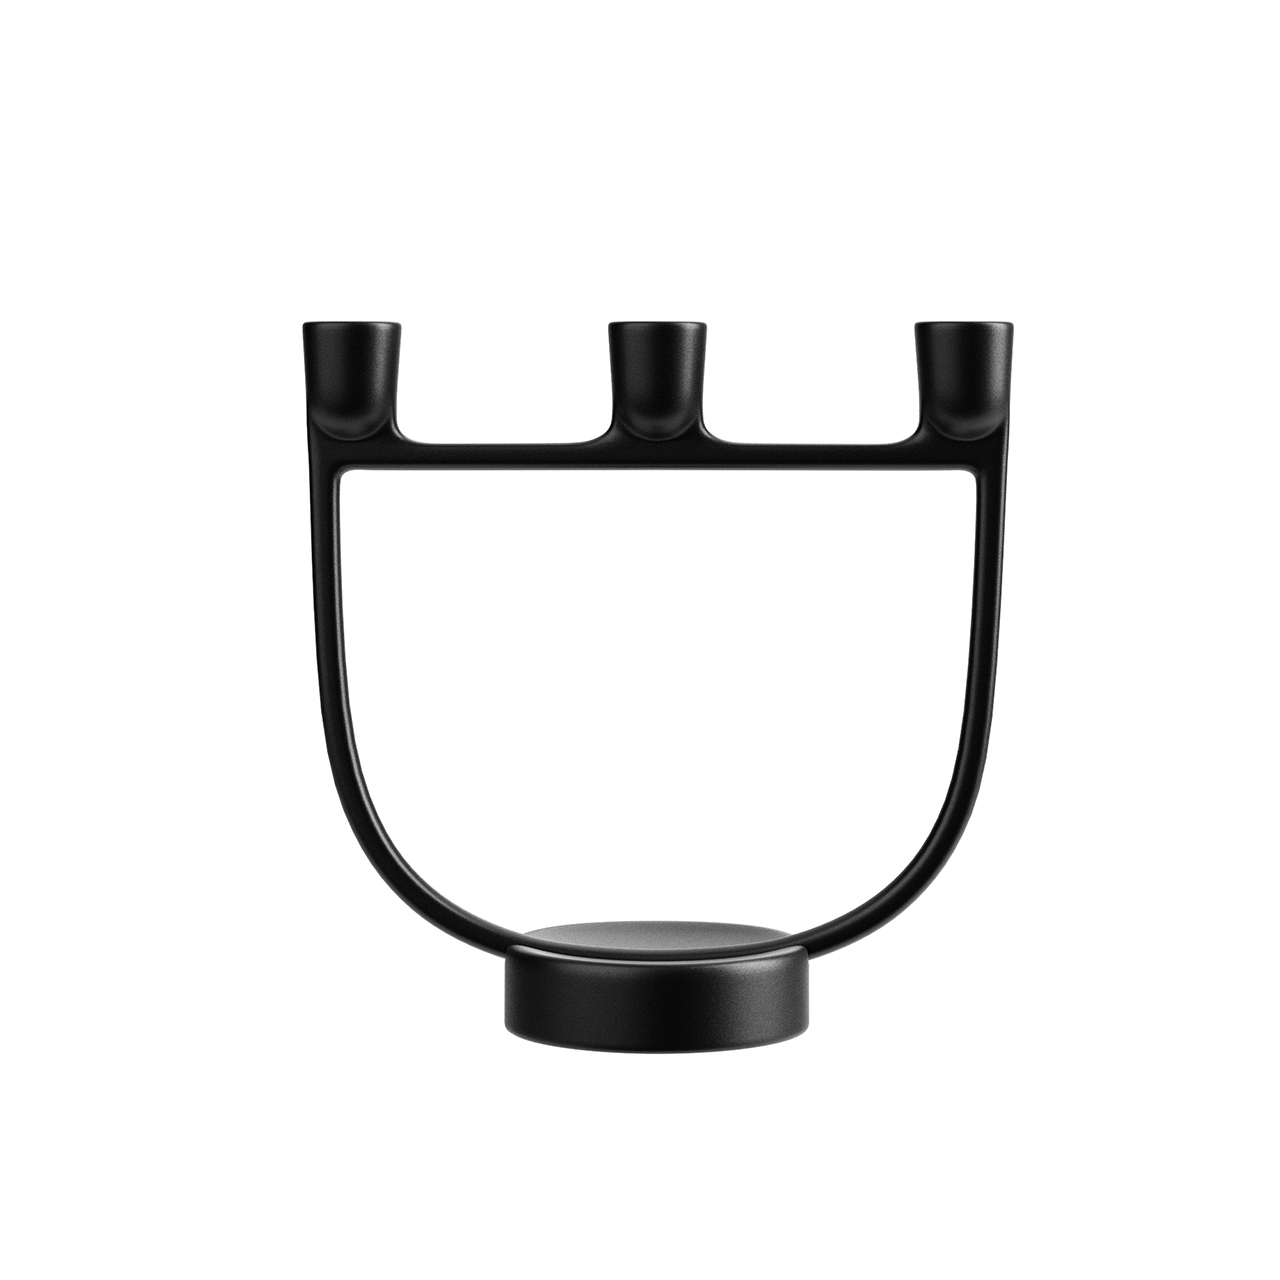 Open Candelabra Candle Holder by Muuto